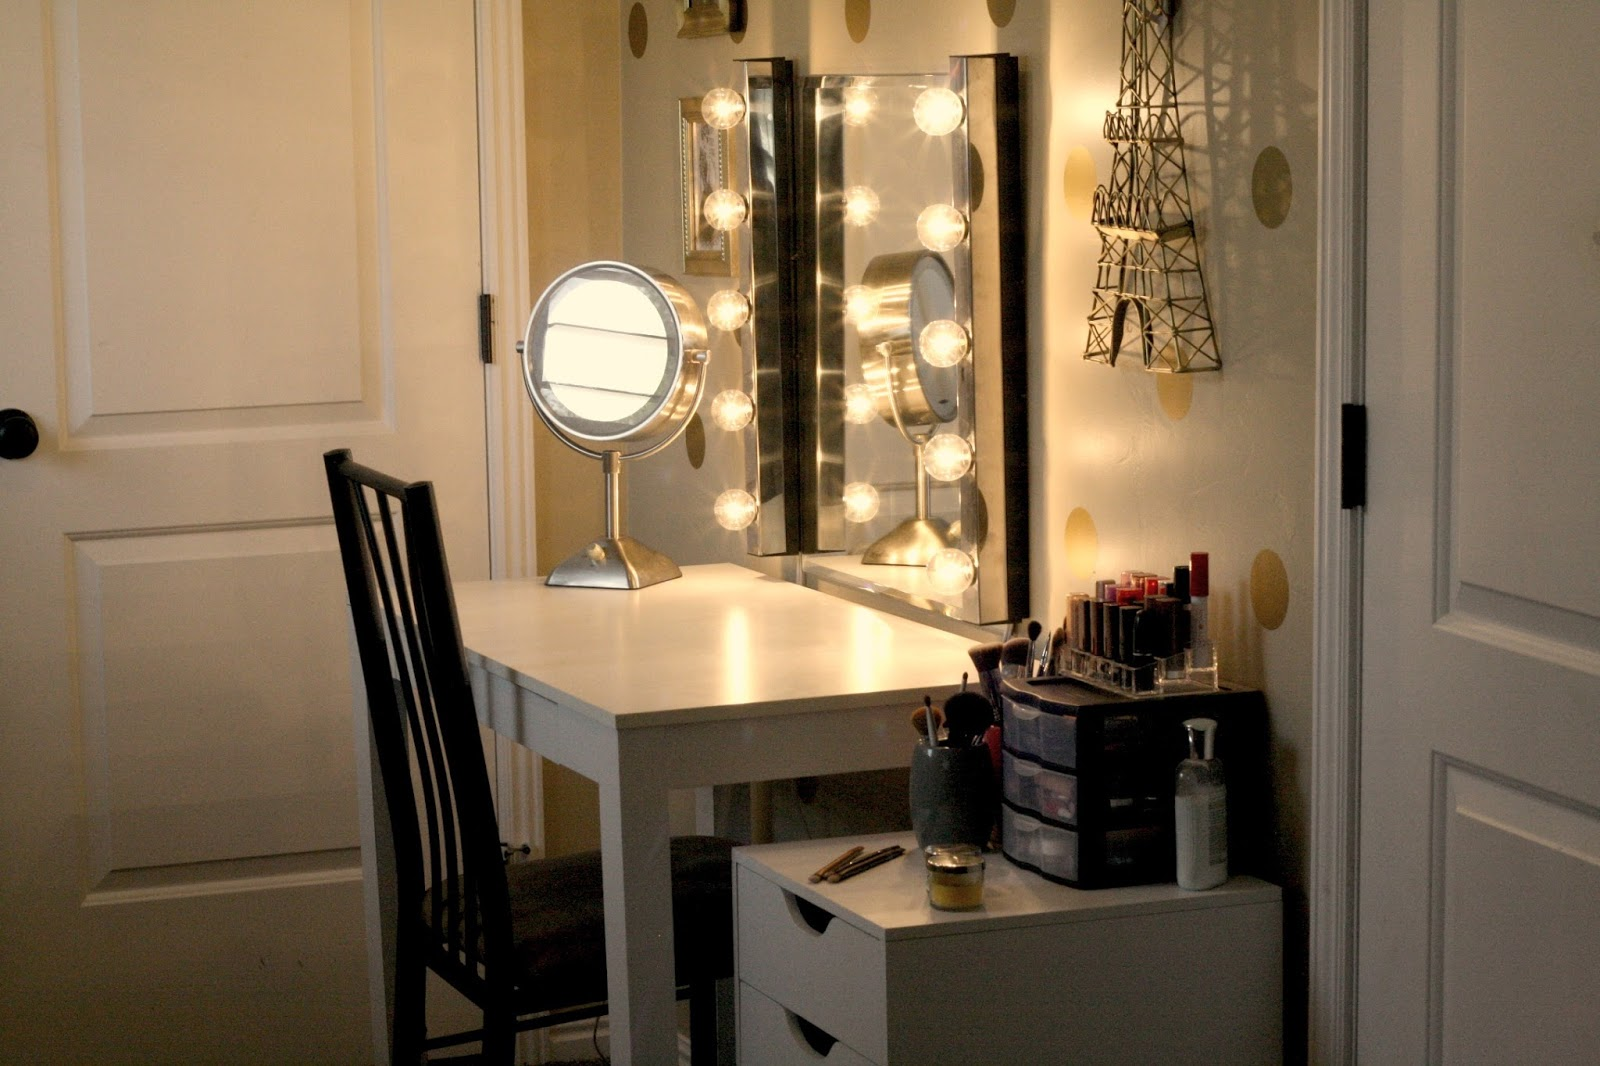 vanity table lighting.  Vanity Ginger Next Door Throughout Vanity Table Lighting G